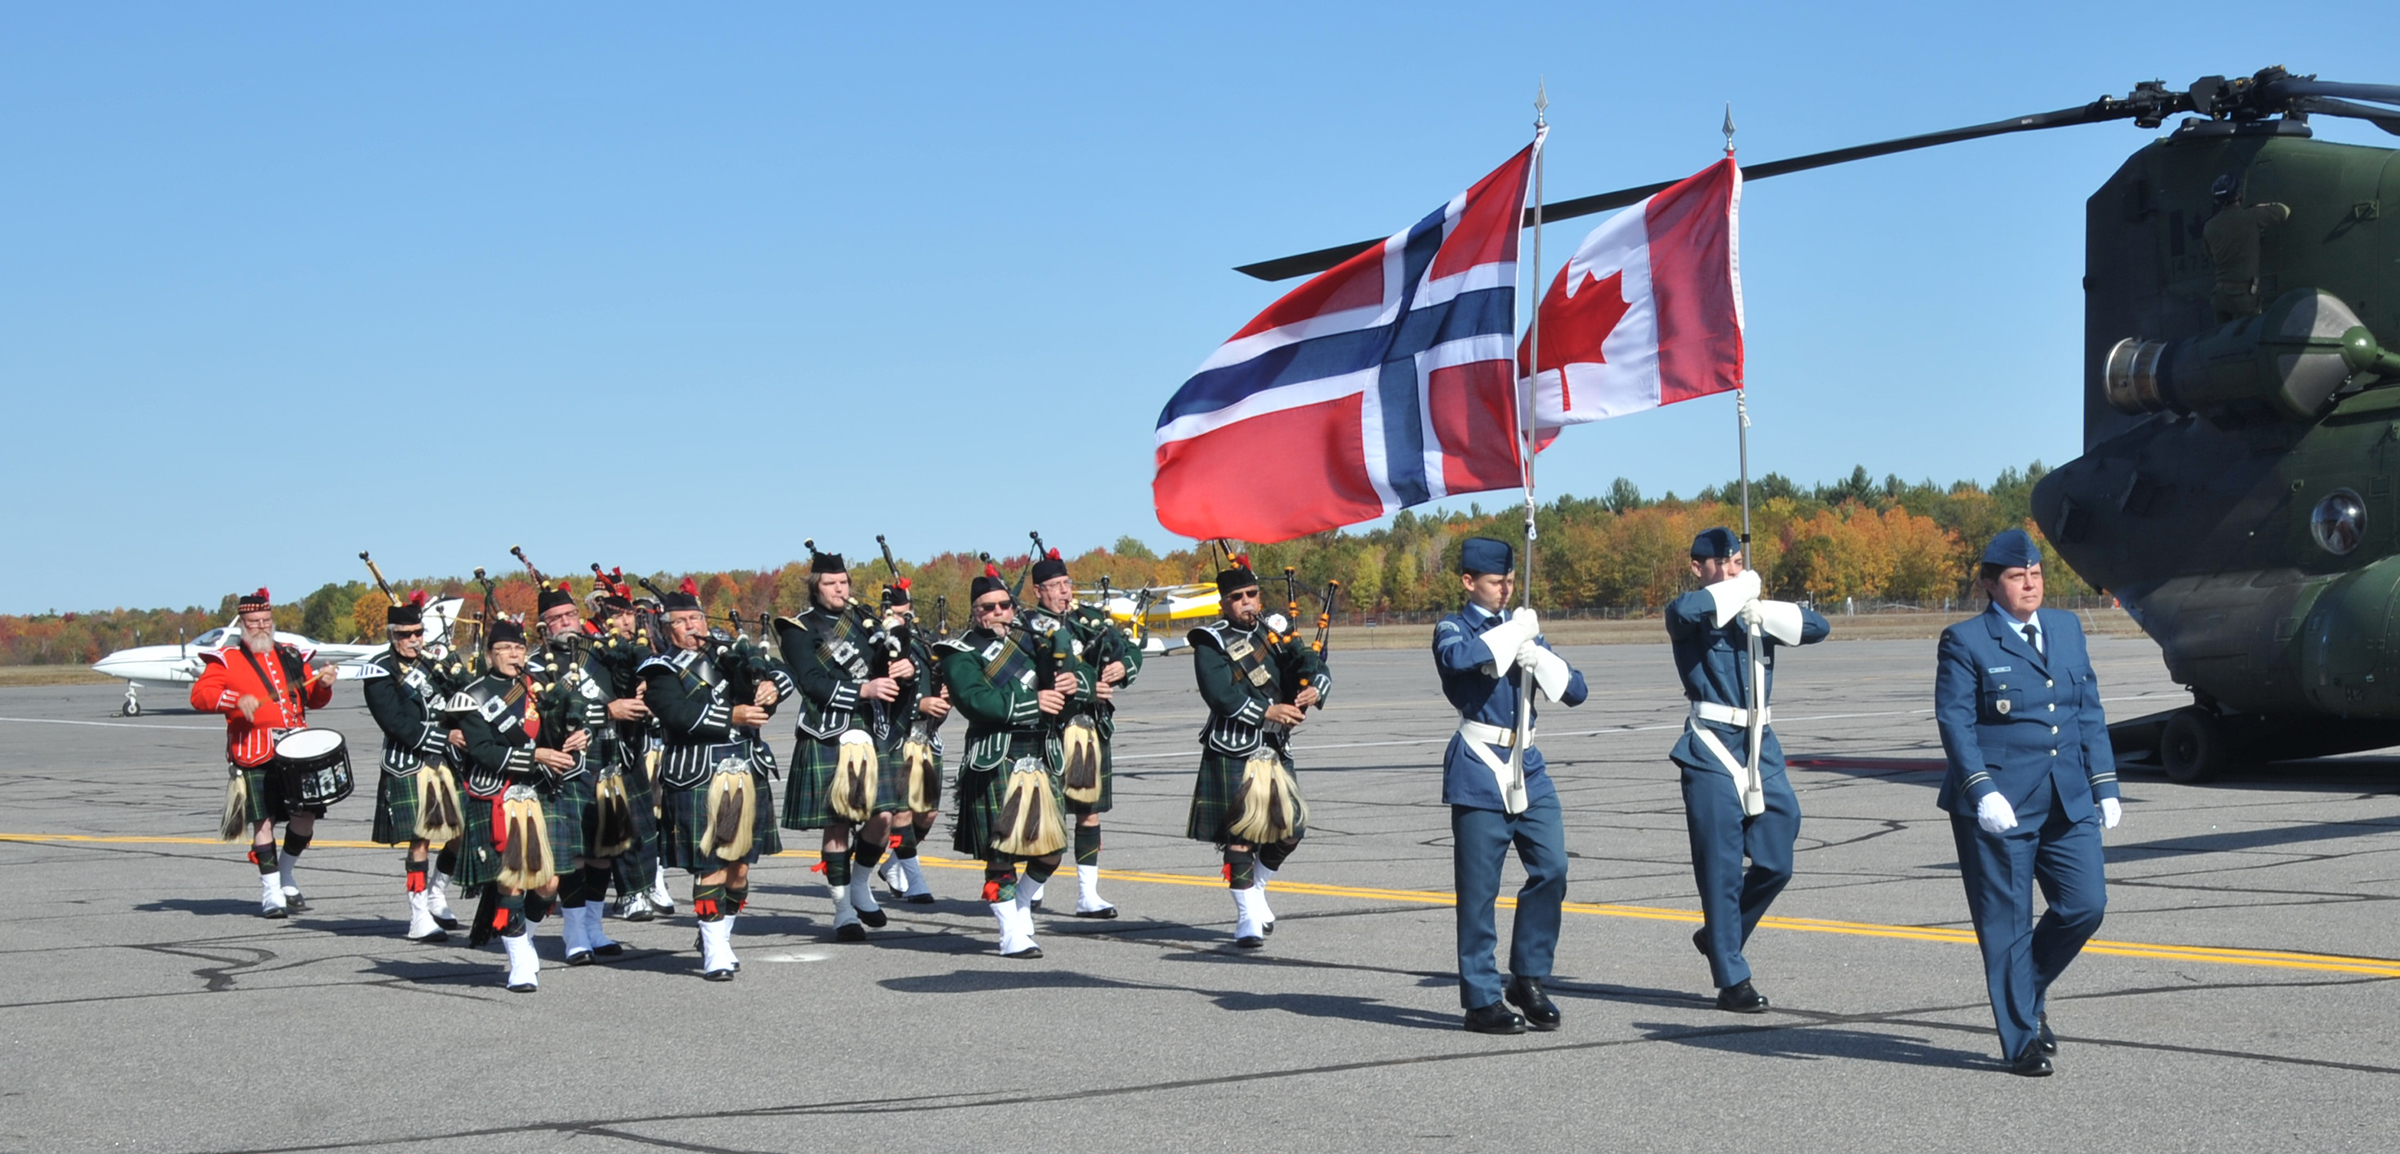 On October 11, 2019, the Bracebridge Pipes and Drums accompany the Norwegian and Canadian delegations in front of the terminal to greet local politicians as part of the 75th anniversary of the Royal Norwegian Air Force. PHOTO: Lieutenant Nora Amrane